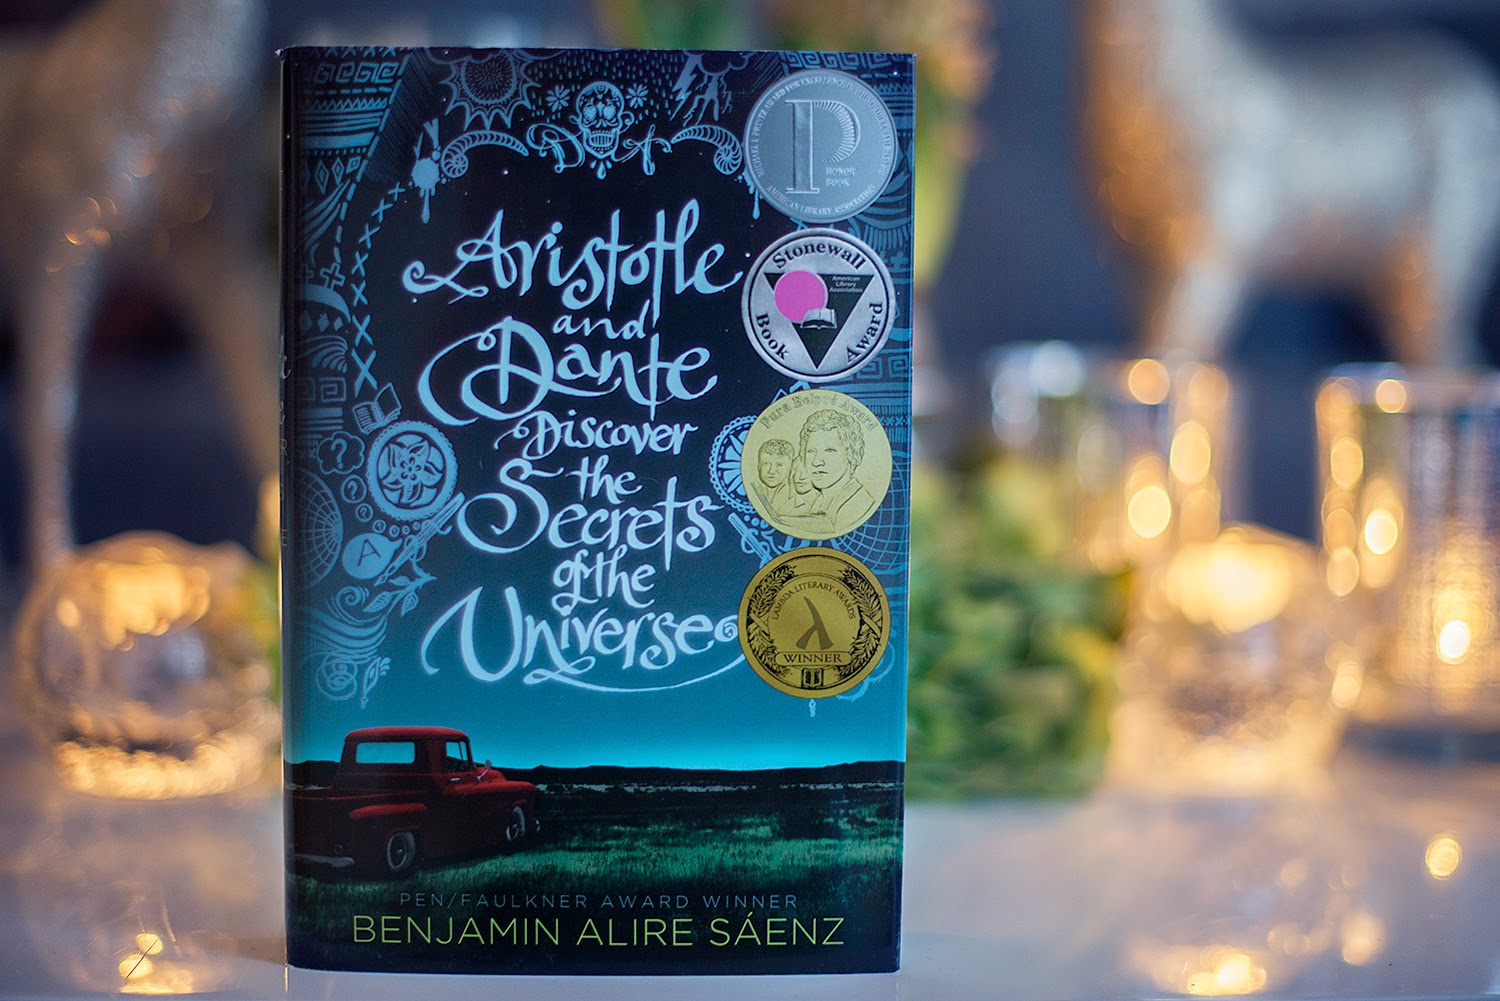 a review of aristotle and dante discover the secrets of the universe a book by benjamin alire saenz